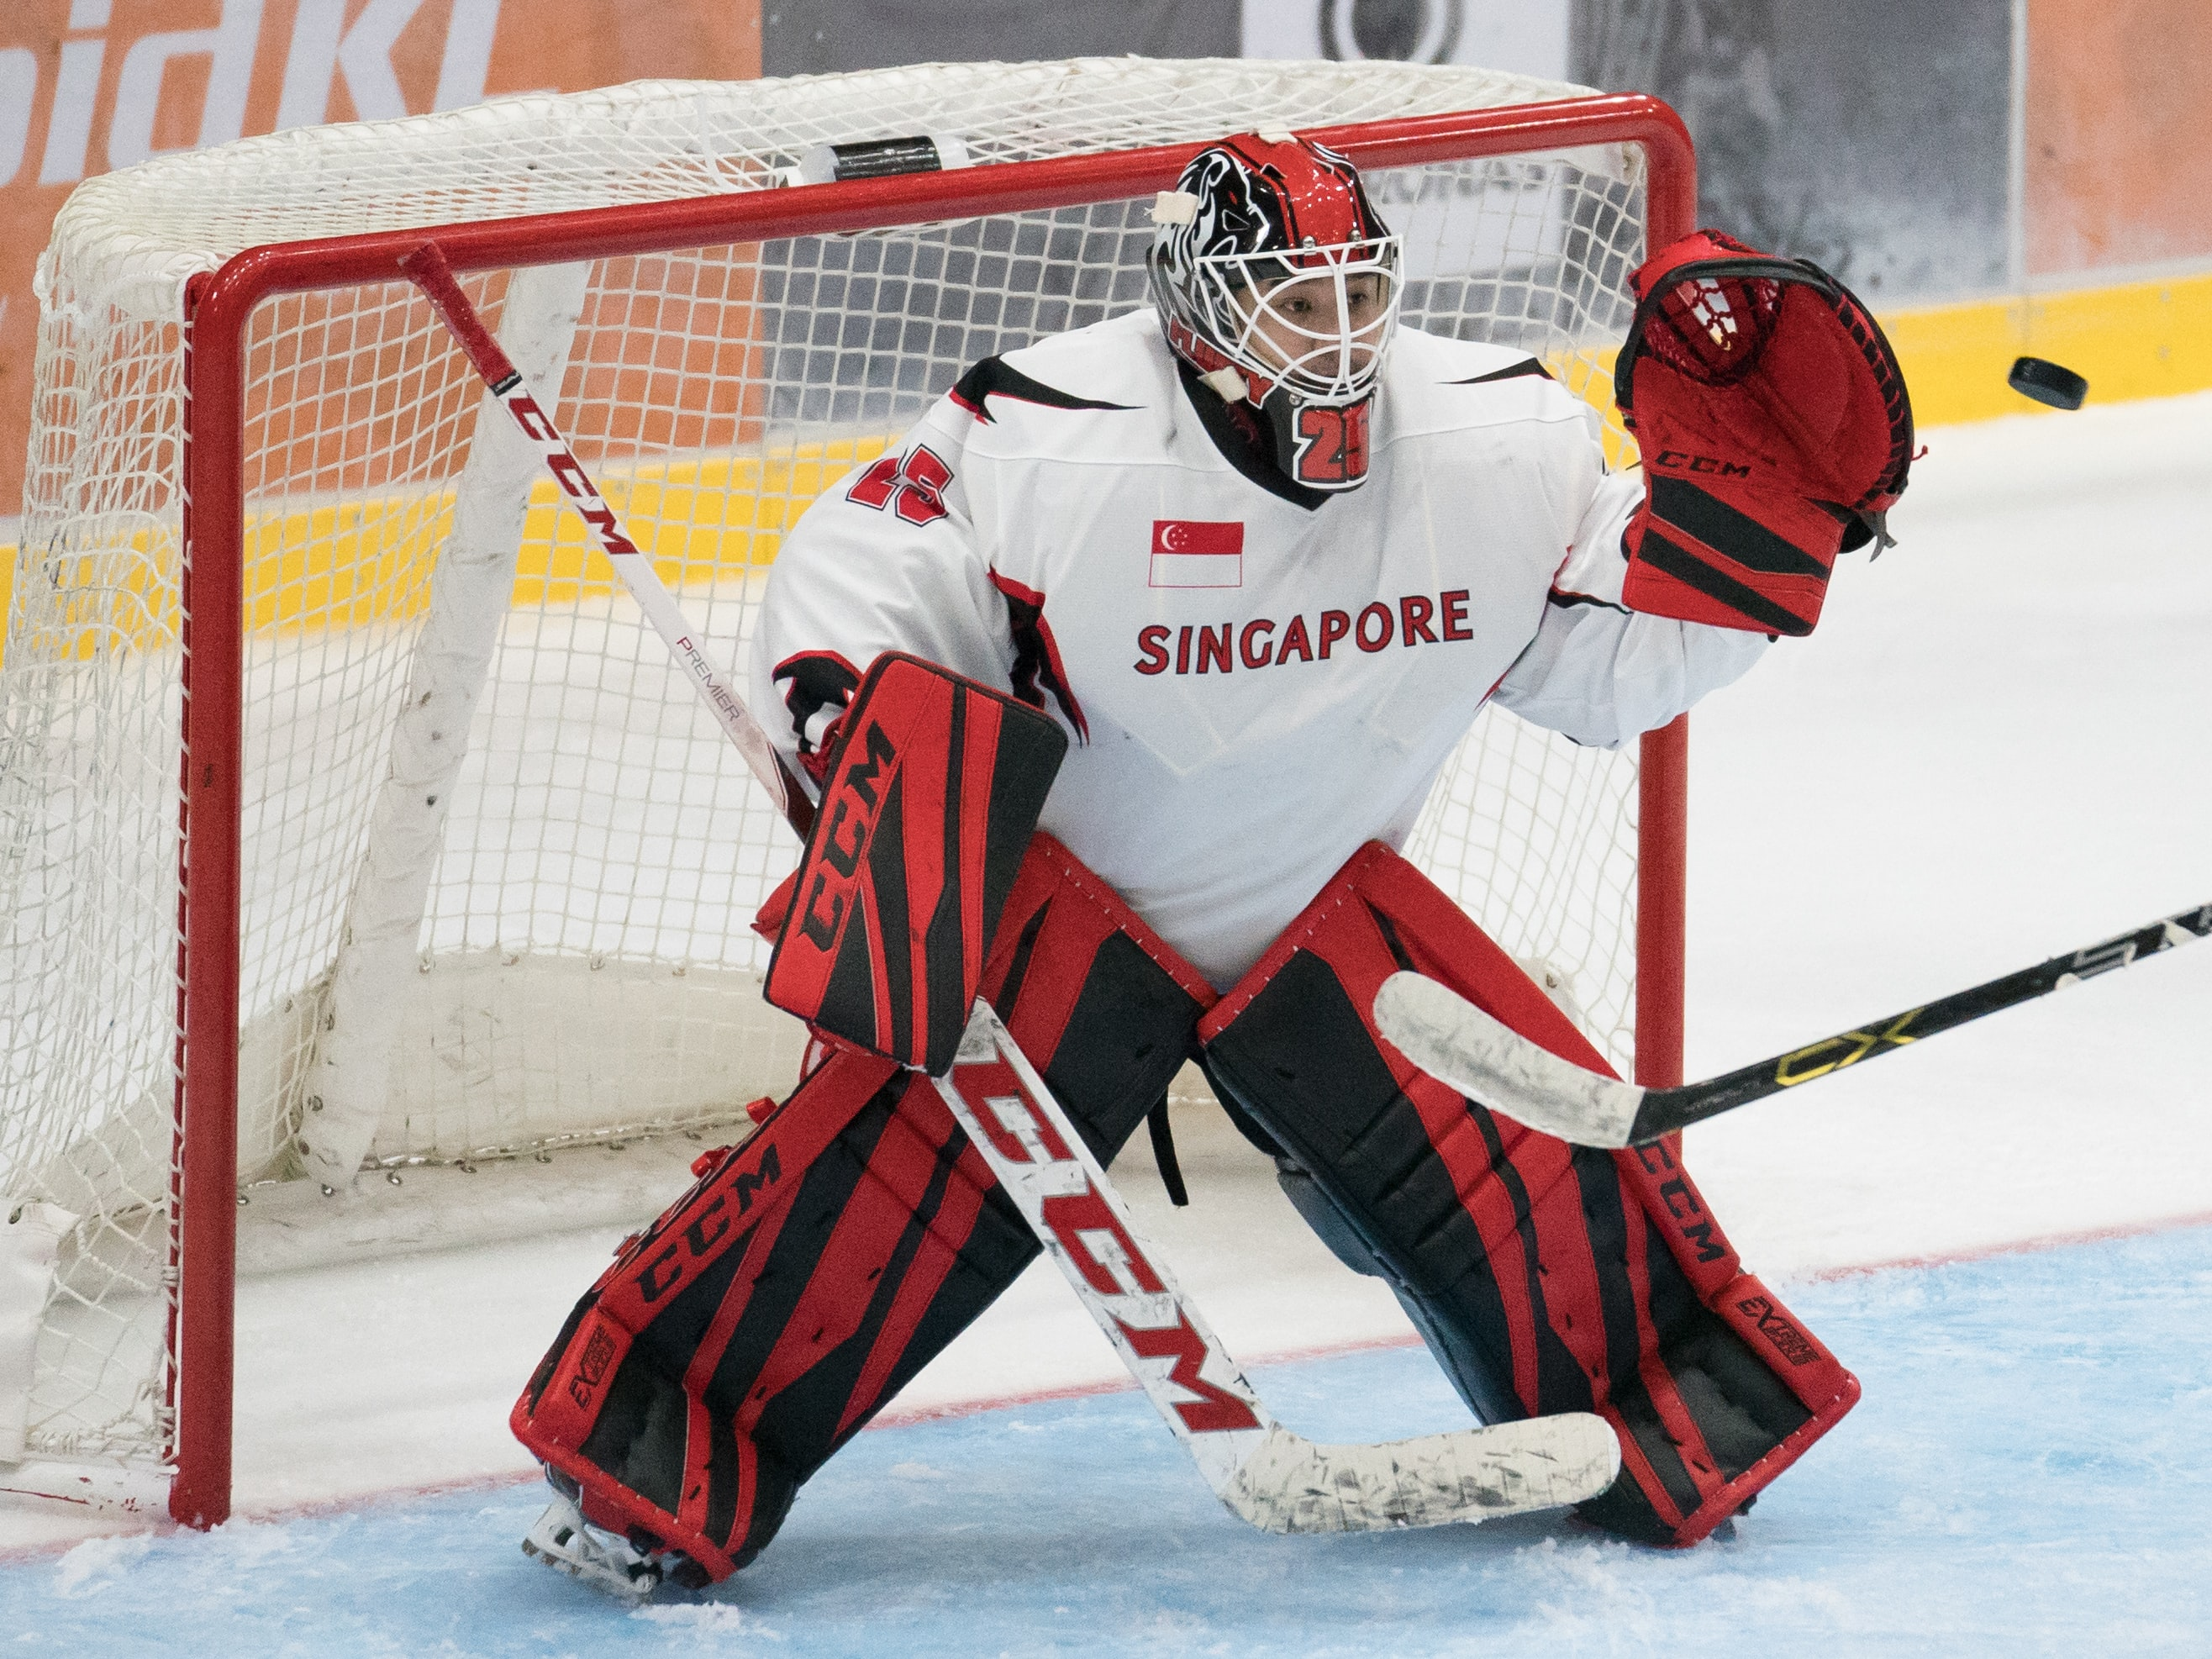 hockey goalie showing defense pose during game